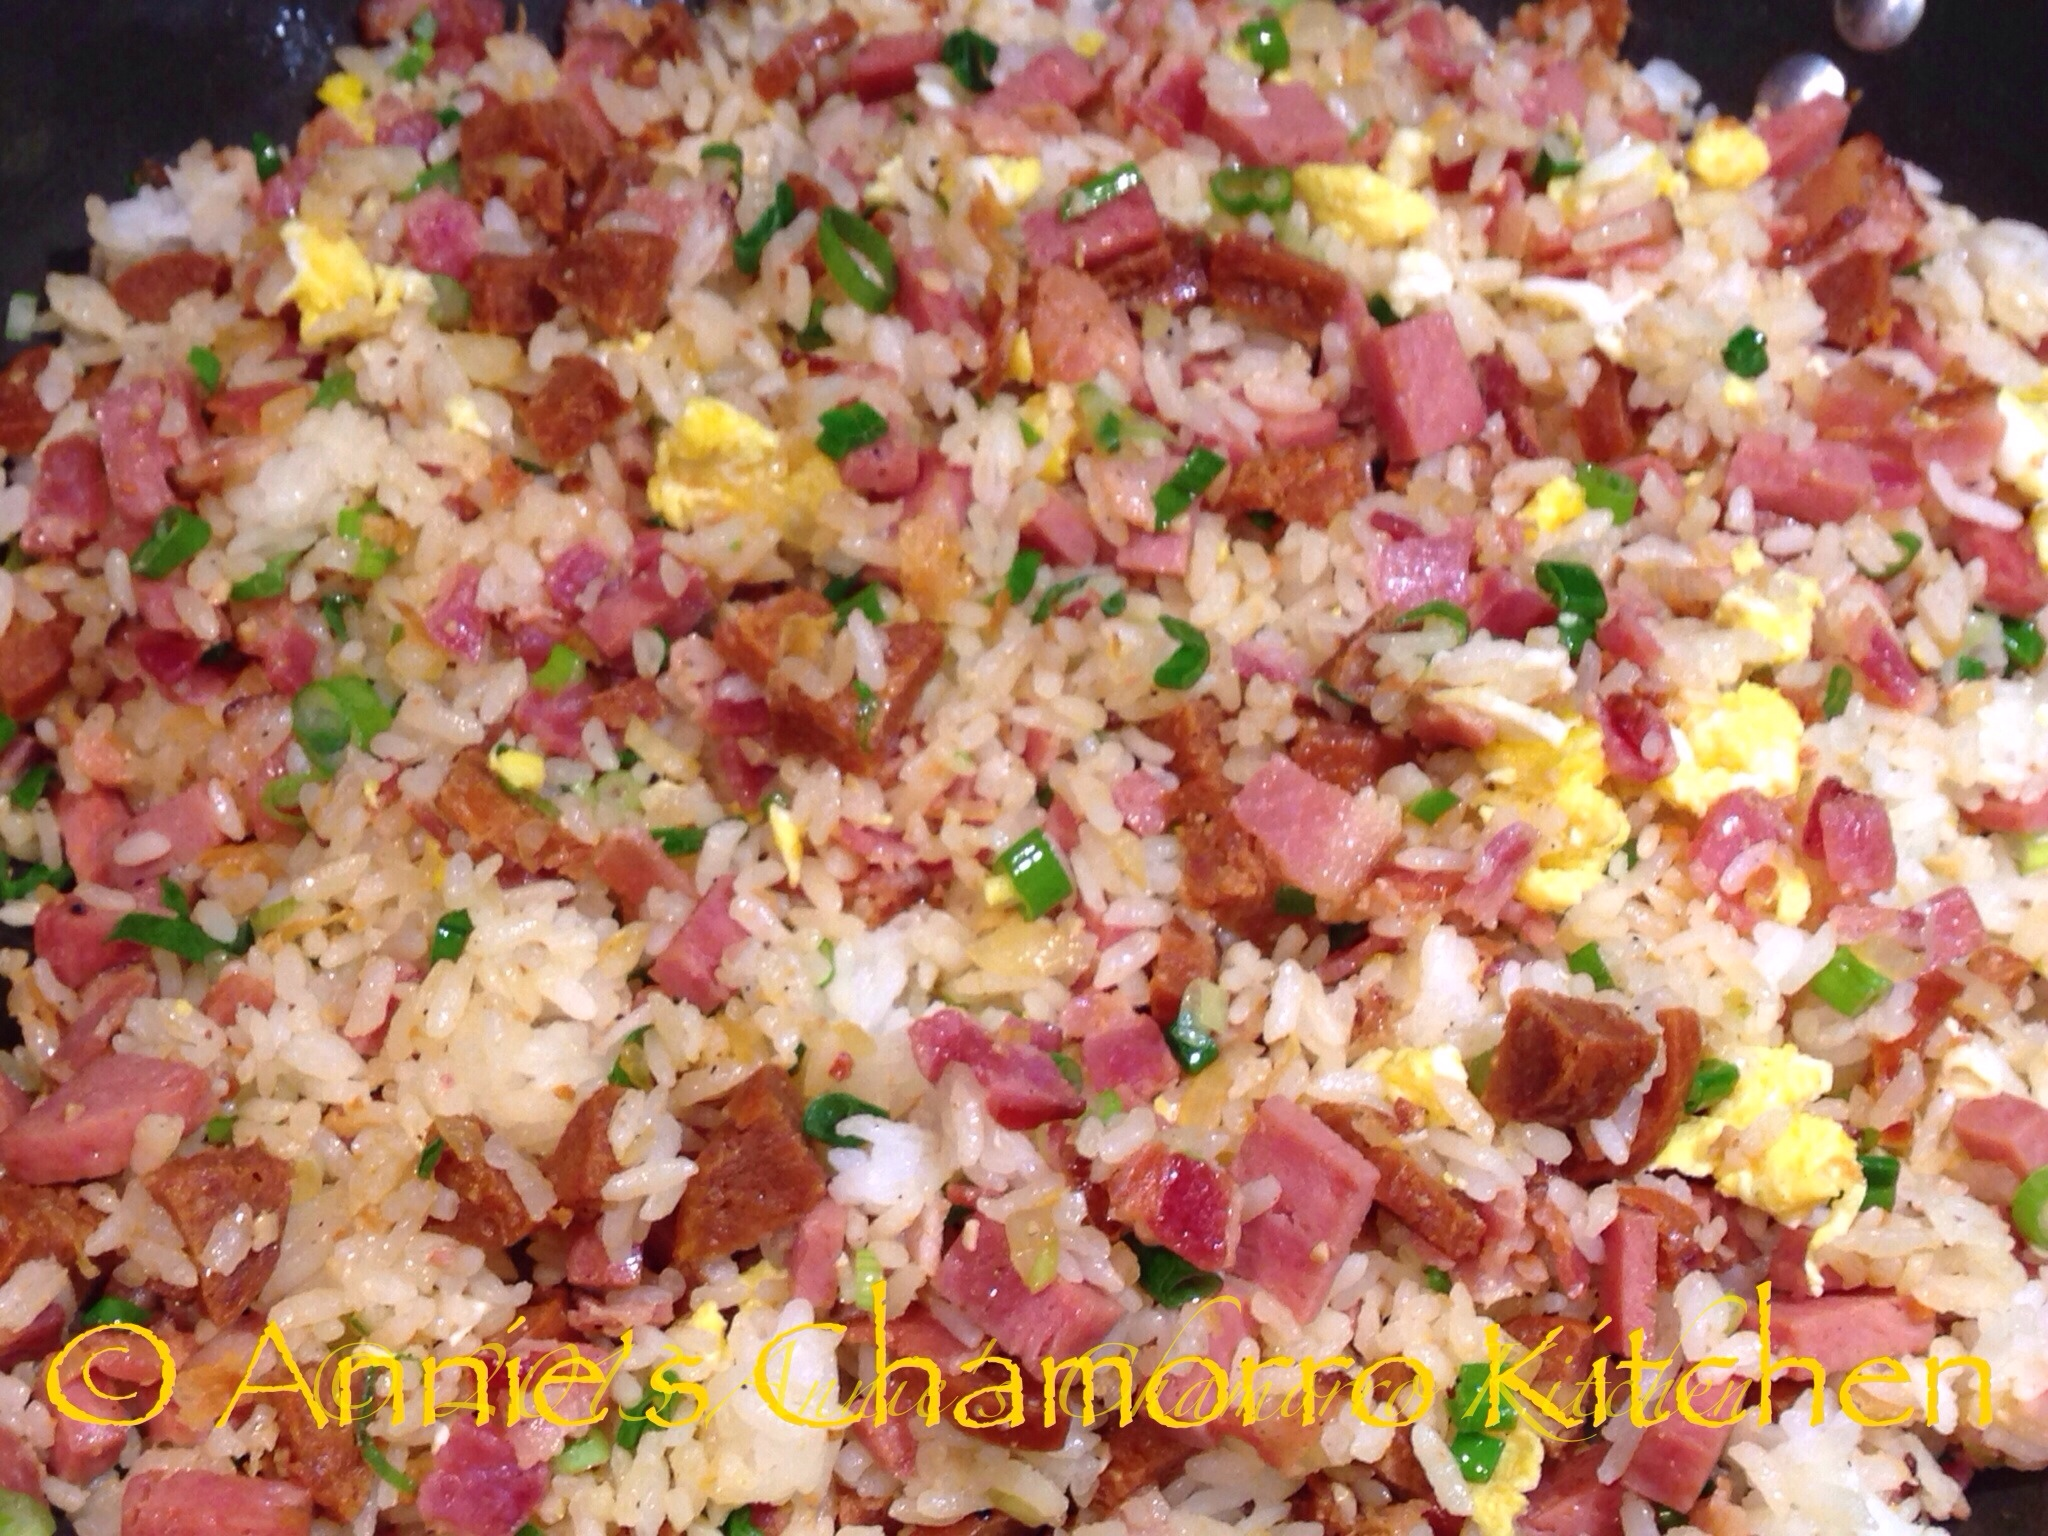 photo sharing spam fried rice flickr photo sharing spam fried rice ...